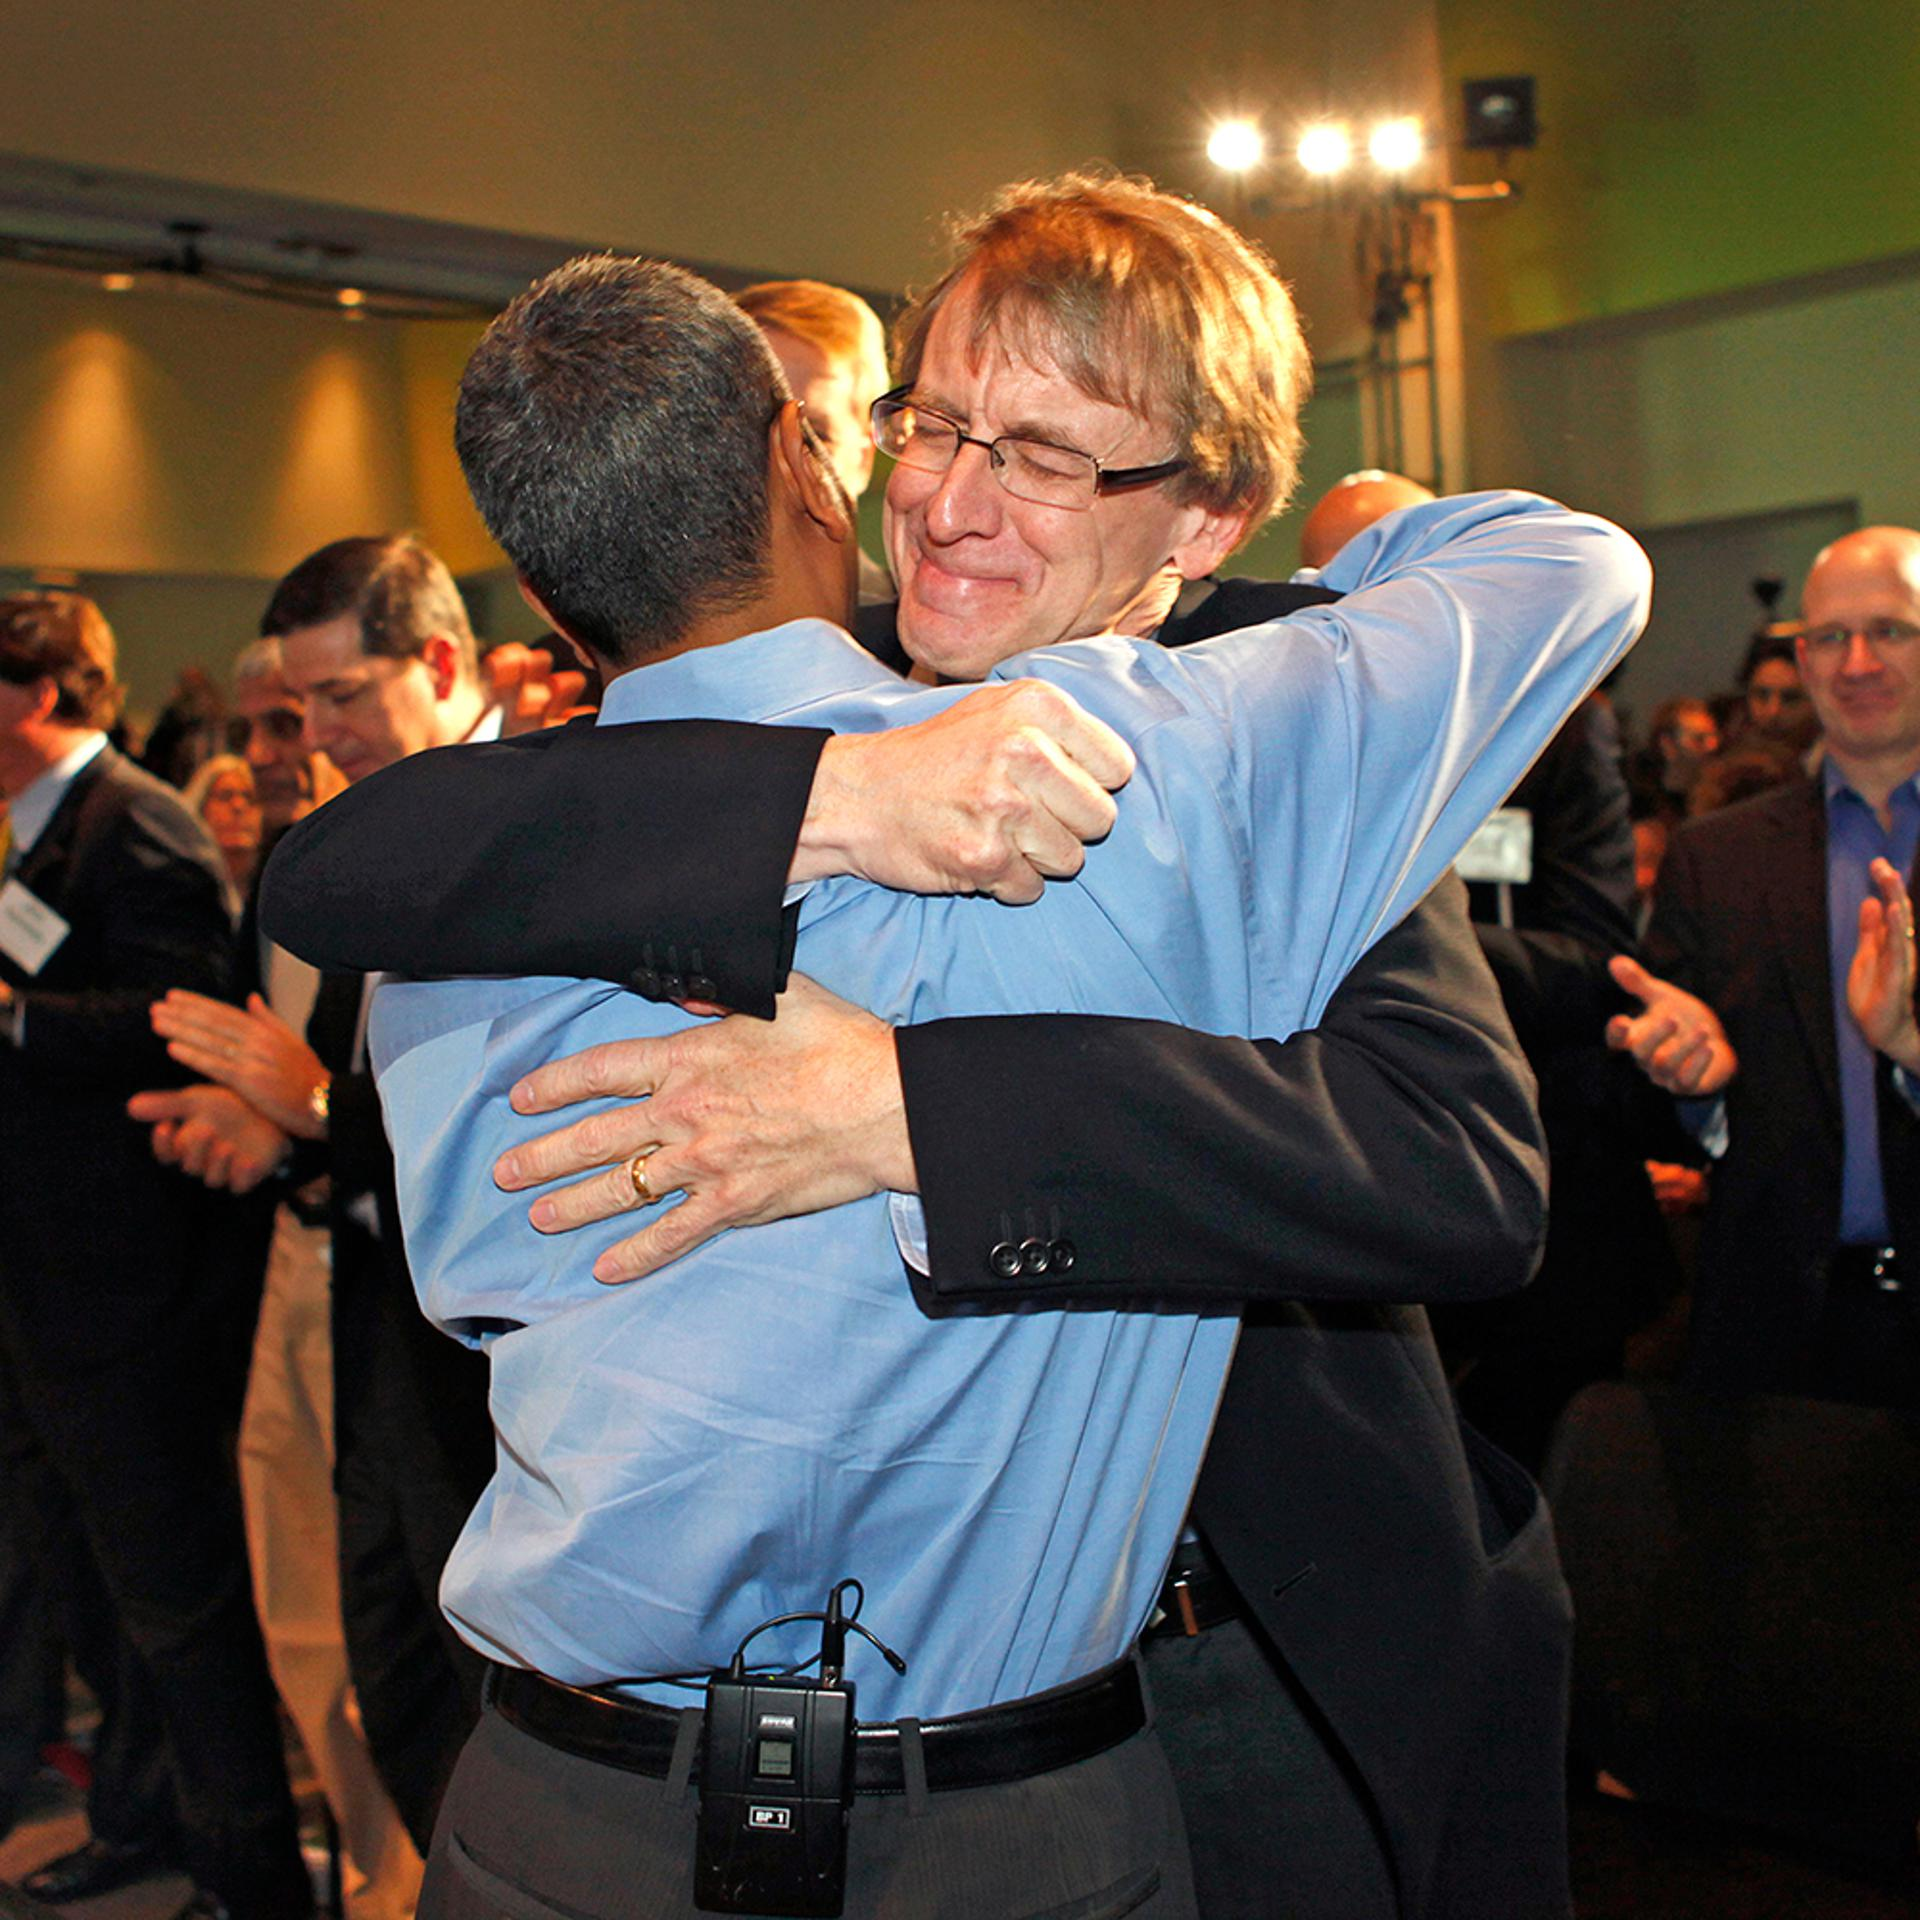 Bloom-secondary-3-John-Doer-embraces-KR-Sridhar-by-Kim-Kulish-Corbis-Getty-Images